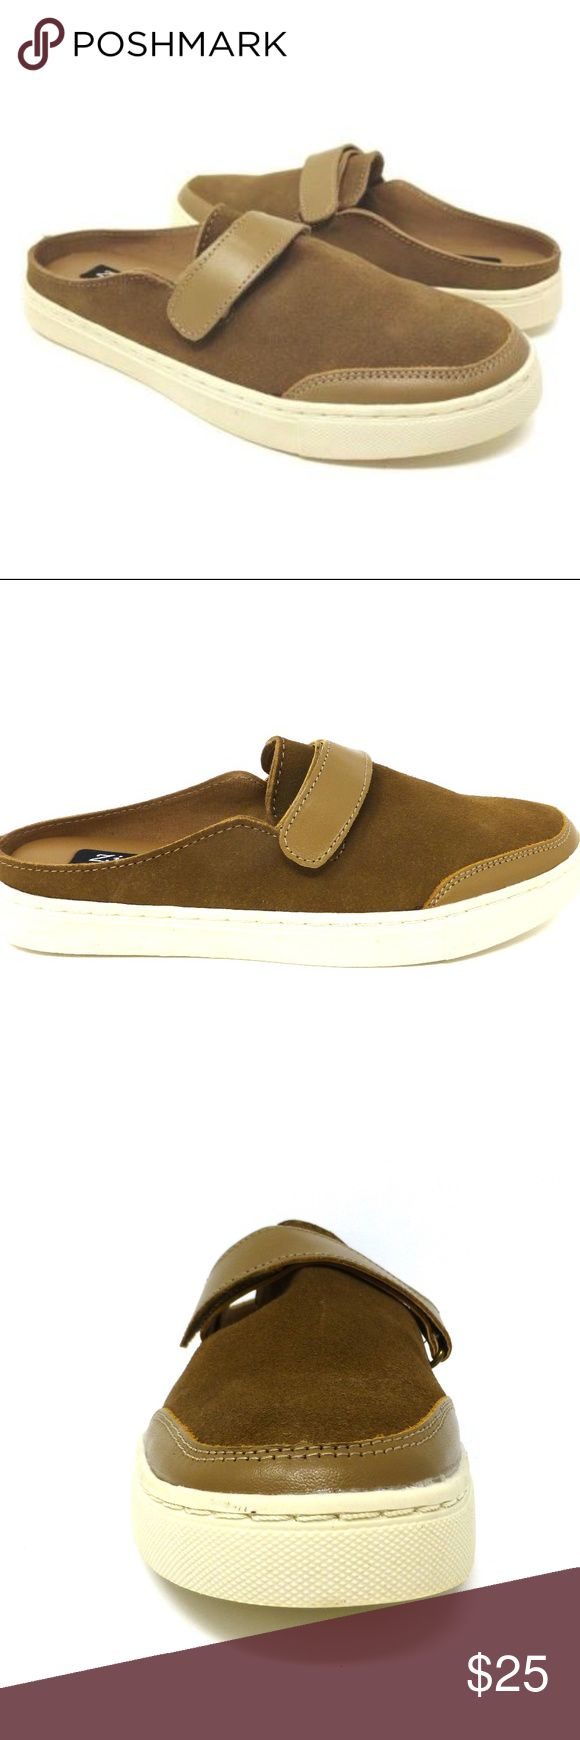 ZIGIsoho Ziginy Arlie Suede Slip-on Sneaker NEW ZIGIsoho Ziginy Womens 8.5 Arlie Suede Leather Slip-on Sneaker Sand NEW NWOB Nordstrom rack clearance shoes have been tried on in store. Suede and leather upper Synthetic sole Round toe slip-on Hook and loop strap ZIGIsoho Shoes Sneakers